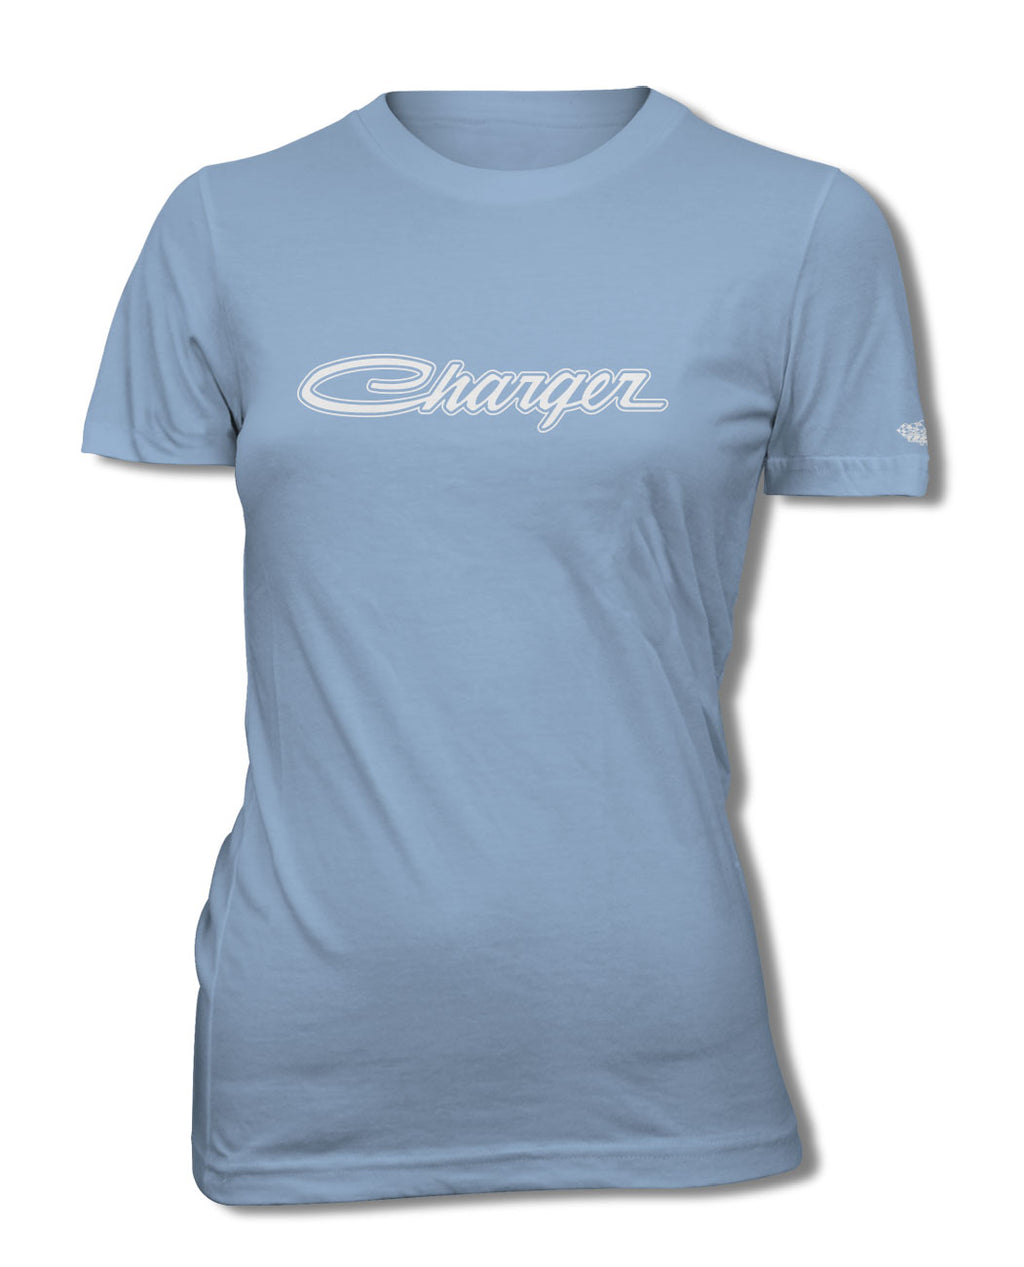 Dodge Charger 1968 - 1973 Emblem T-Shirt - Women - Emblem